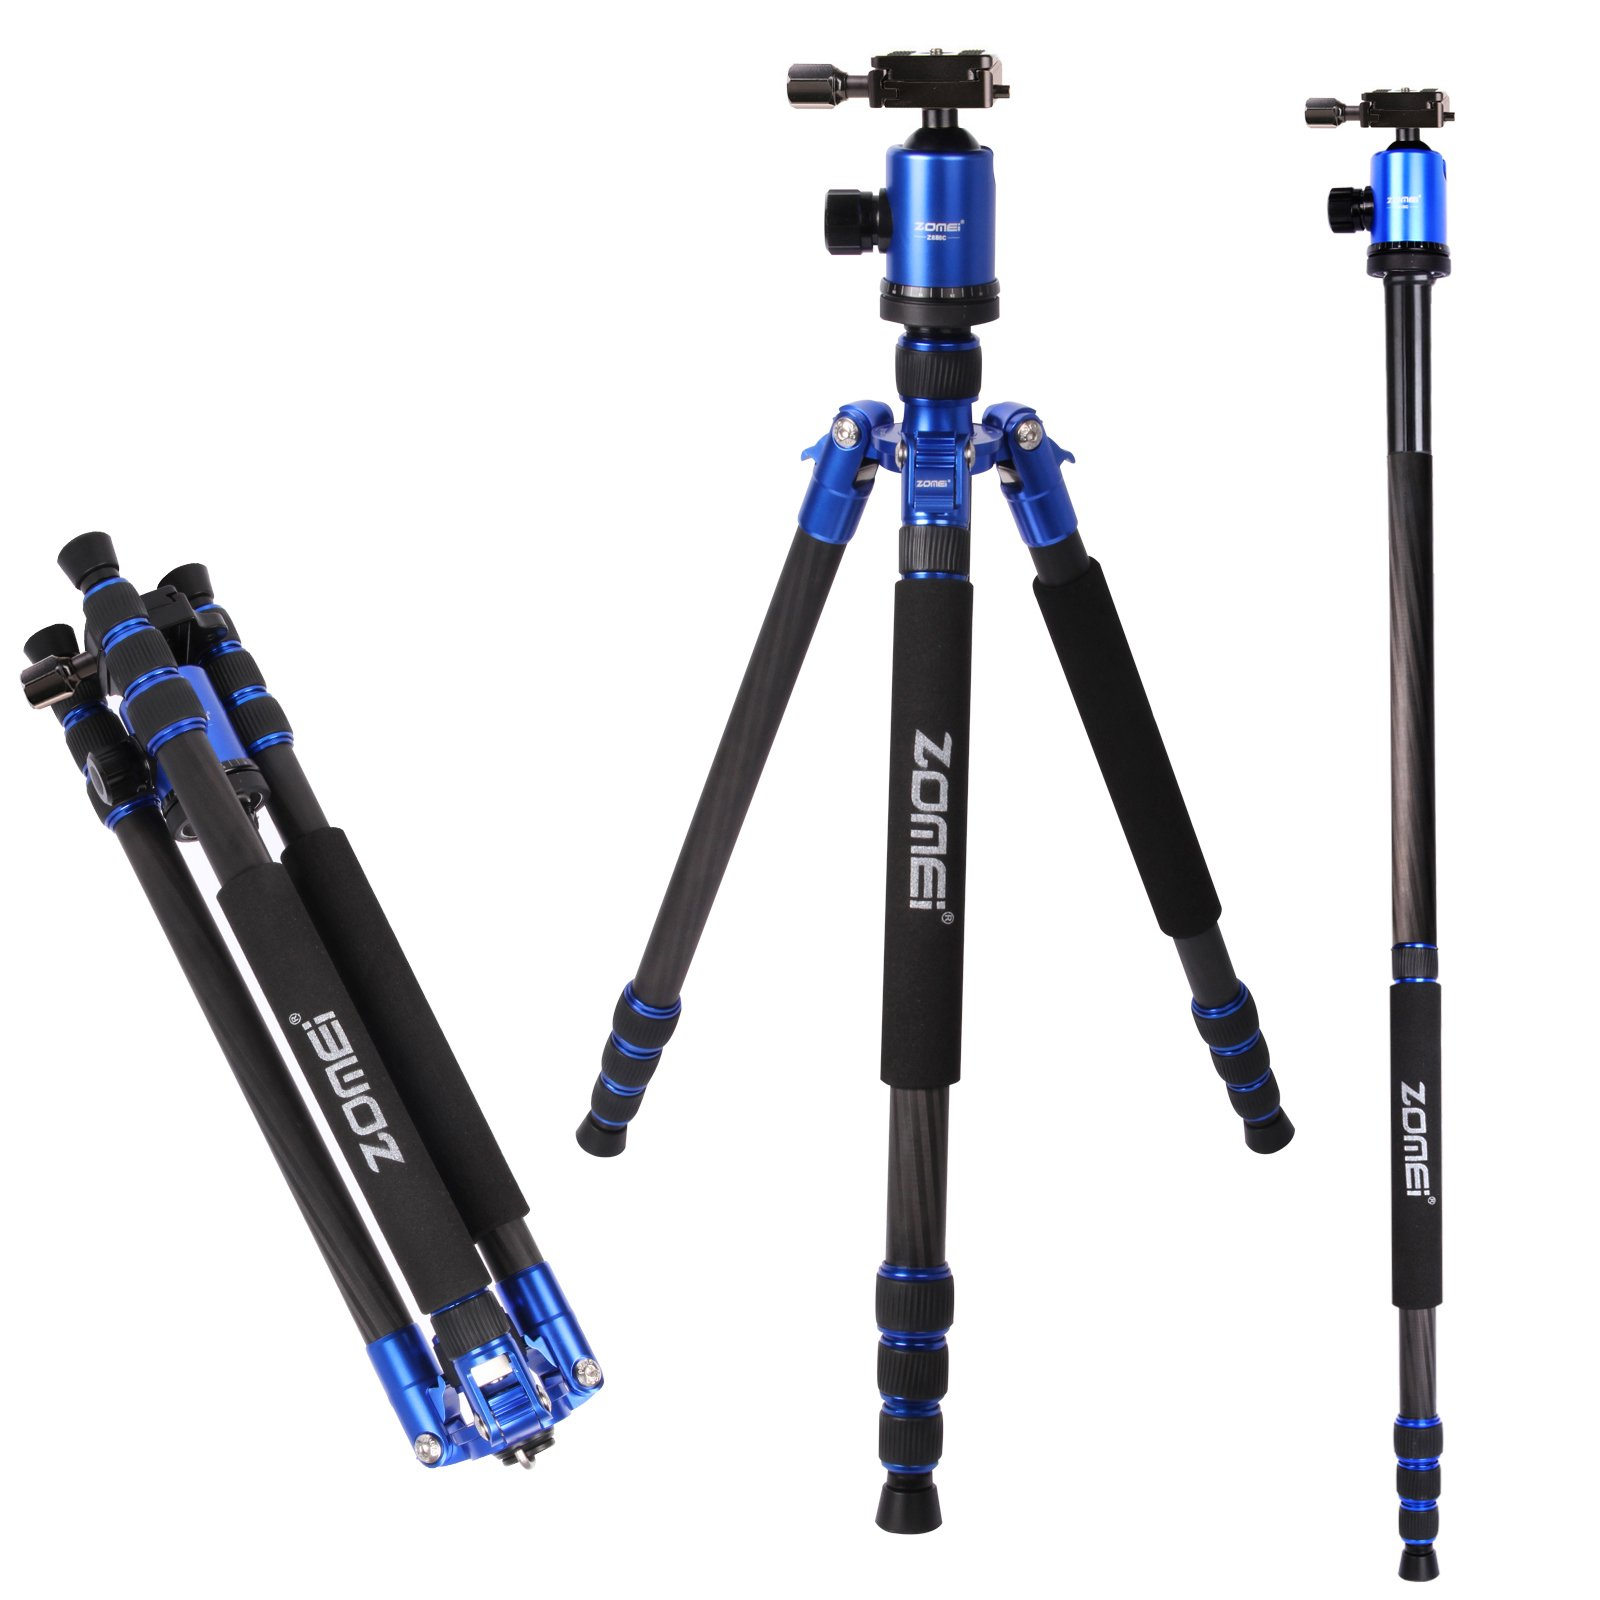 Z888C Travel Carbon Fiber Tripod with Bag by ZOMEI (Blue)